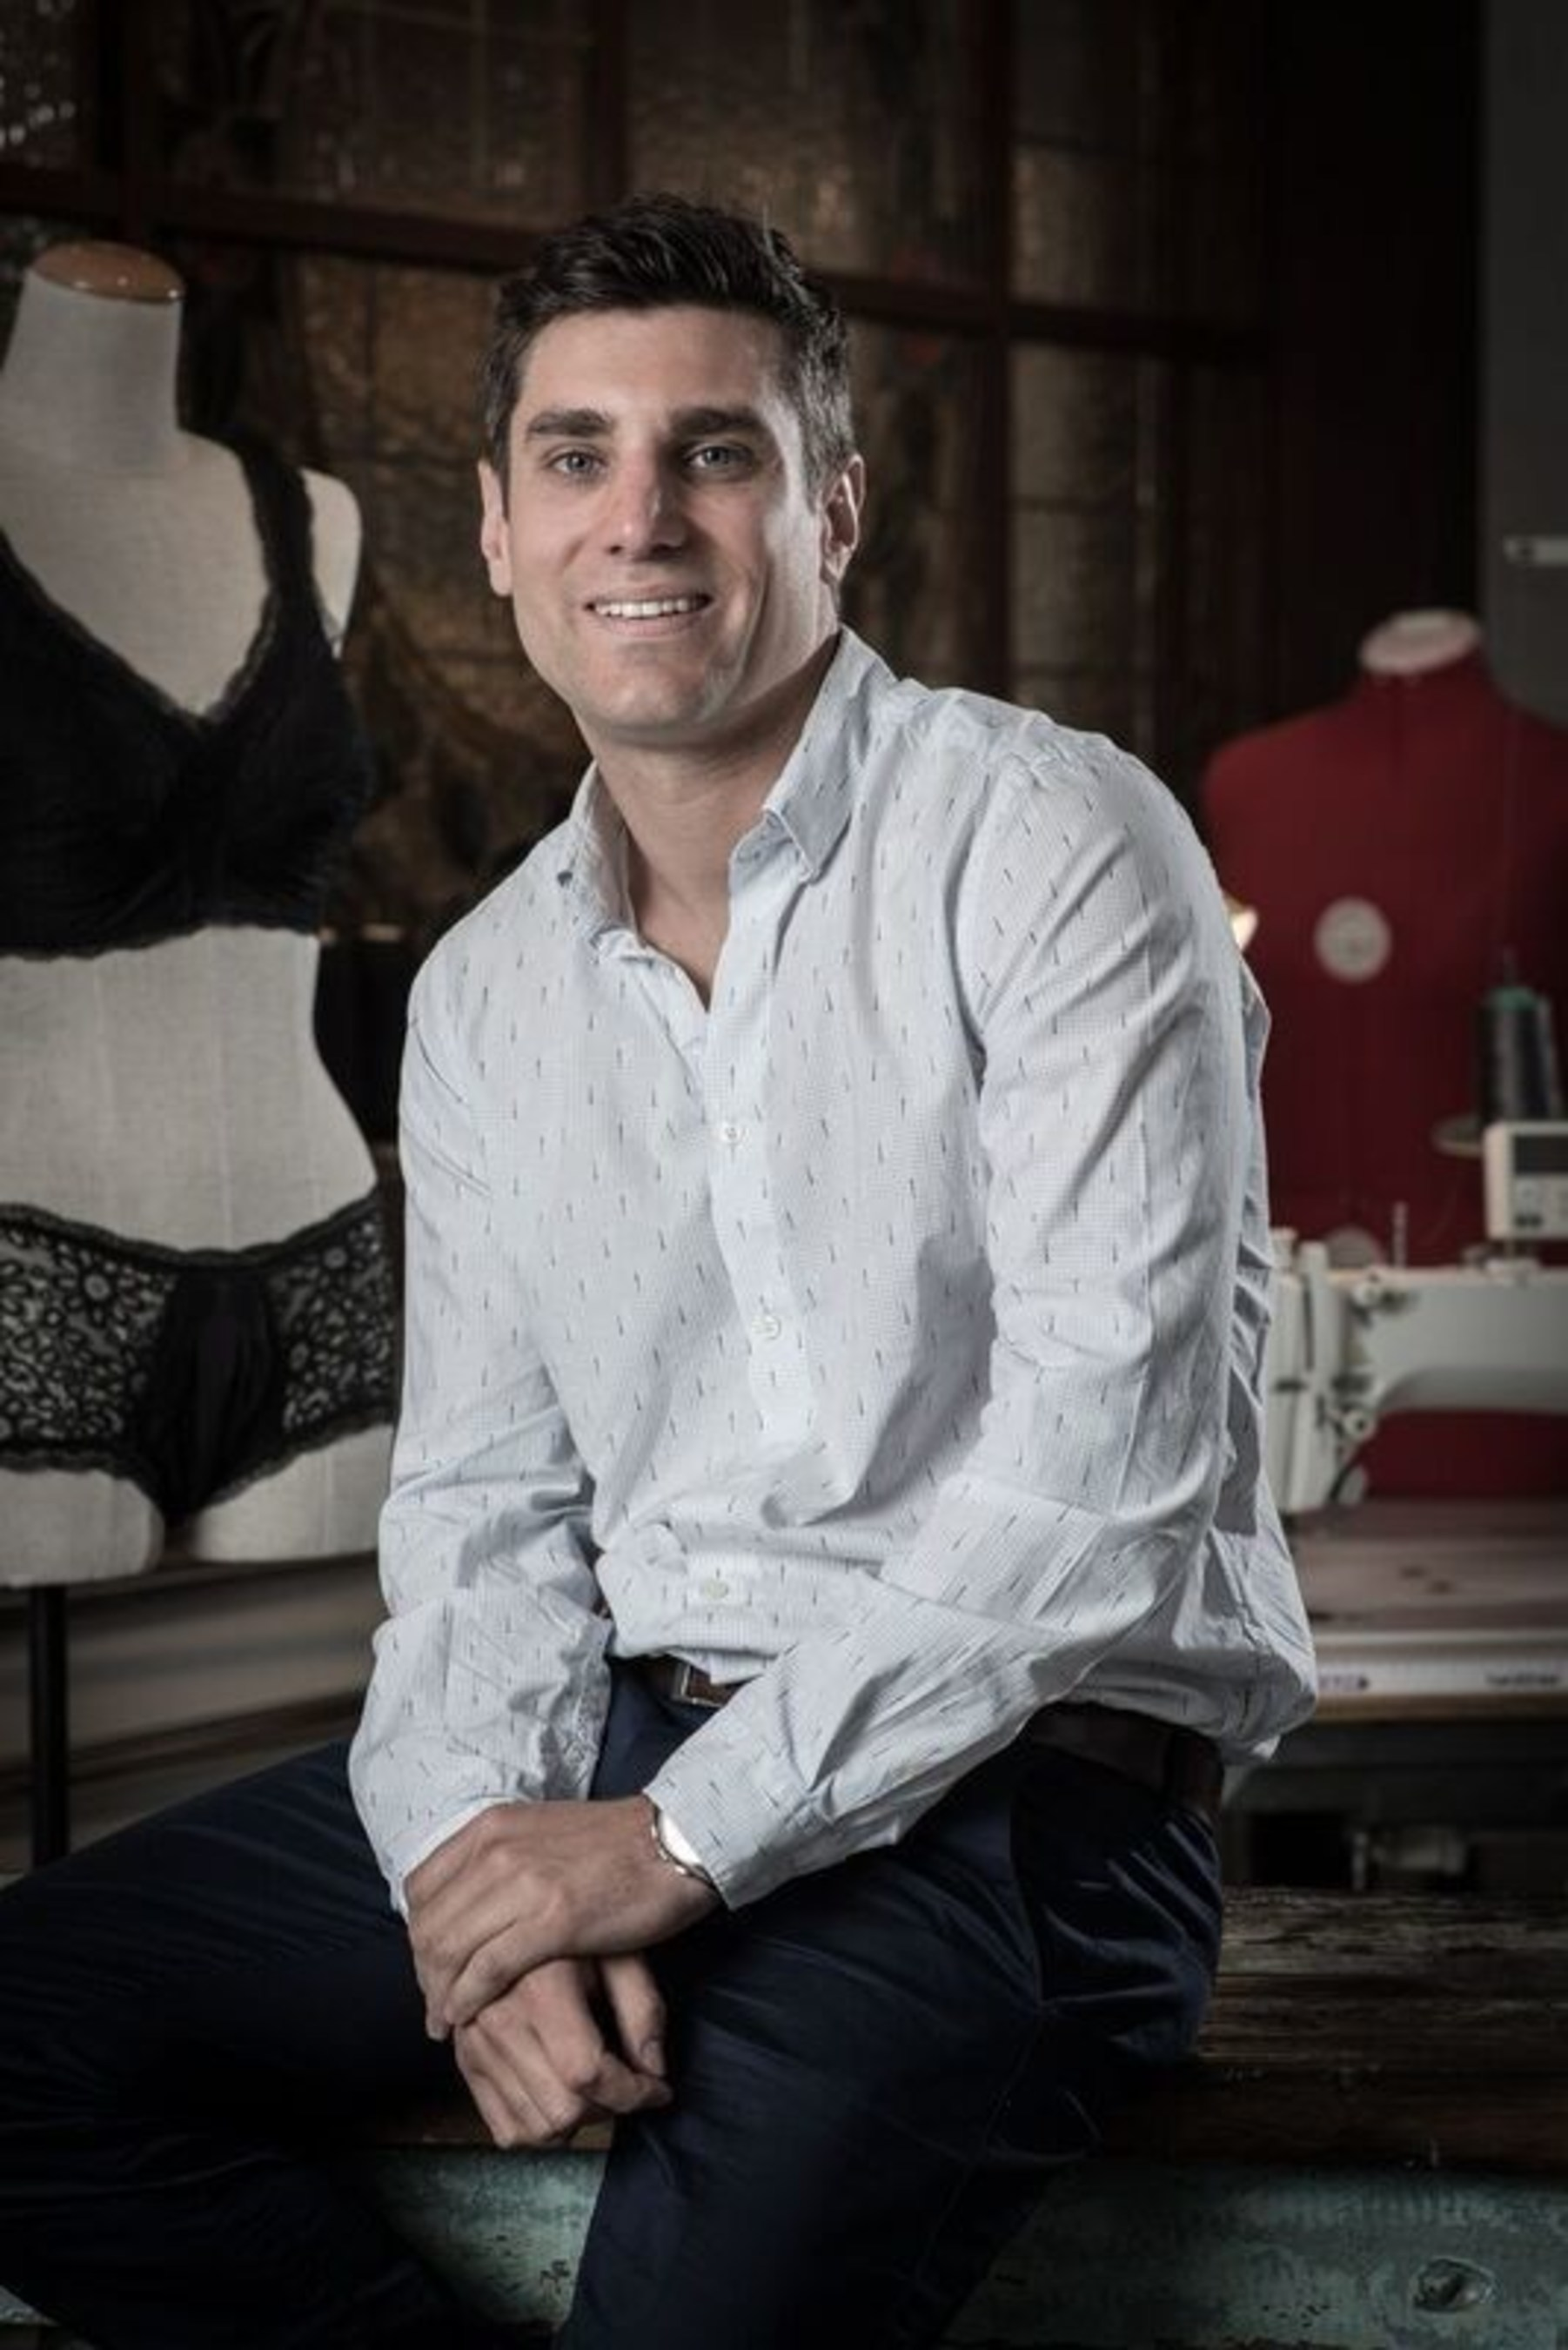 Dr. Mark Davey, co-founder and CEO of Confitex, the Confidence Undergarment Company